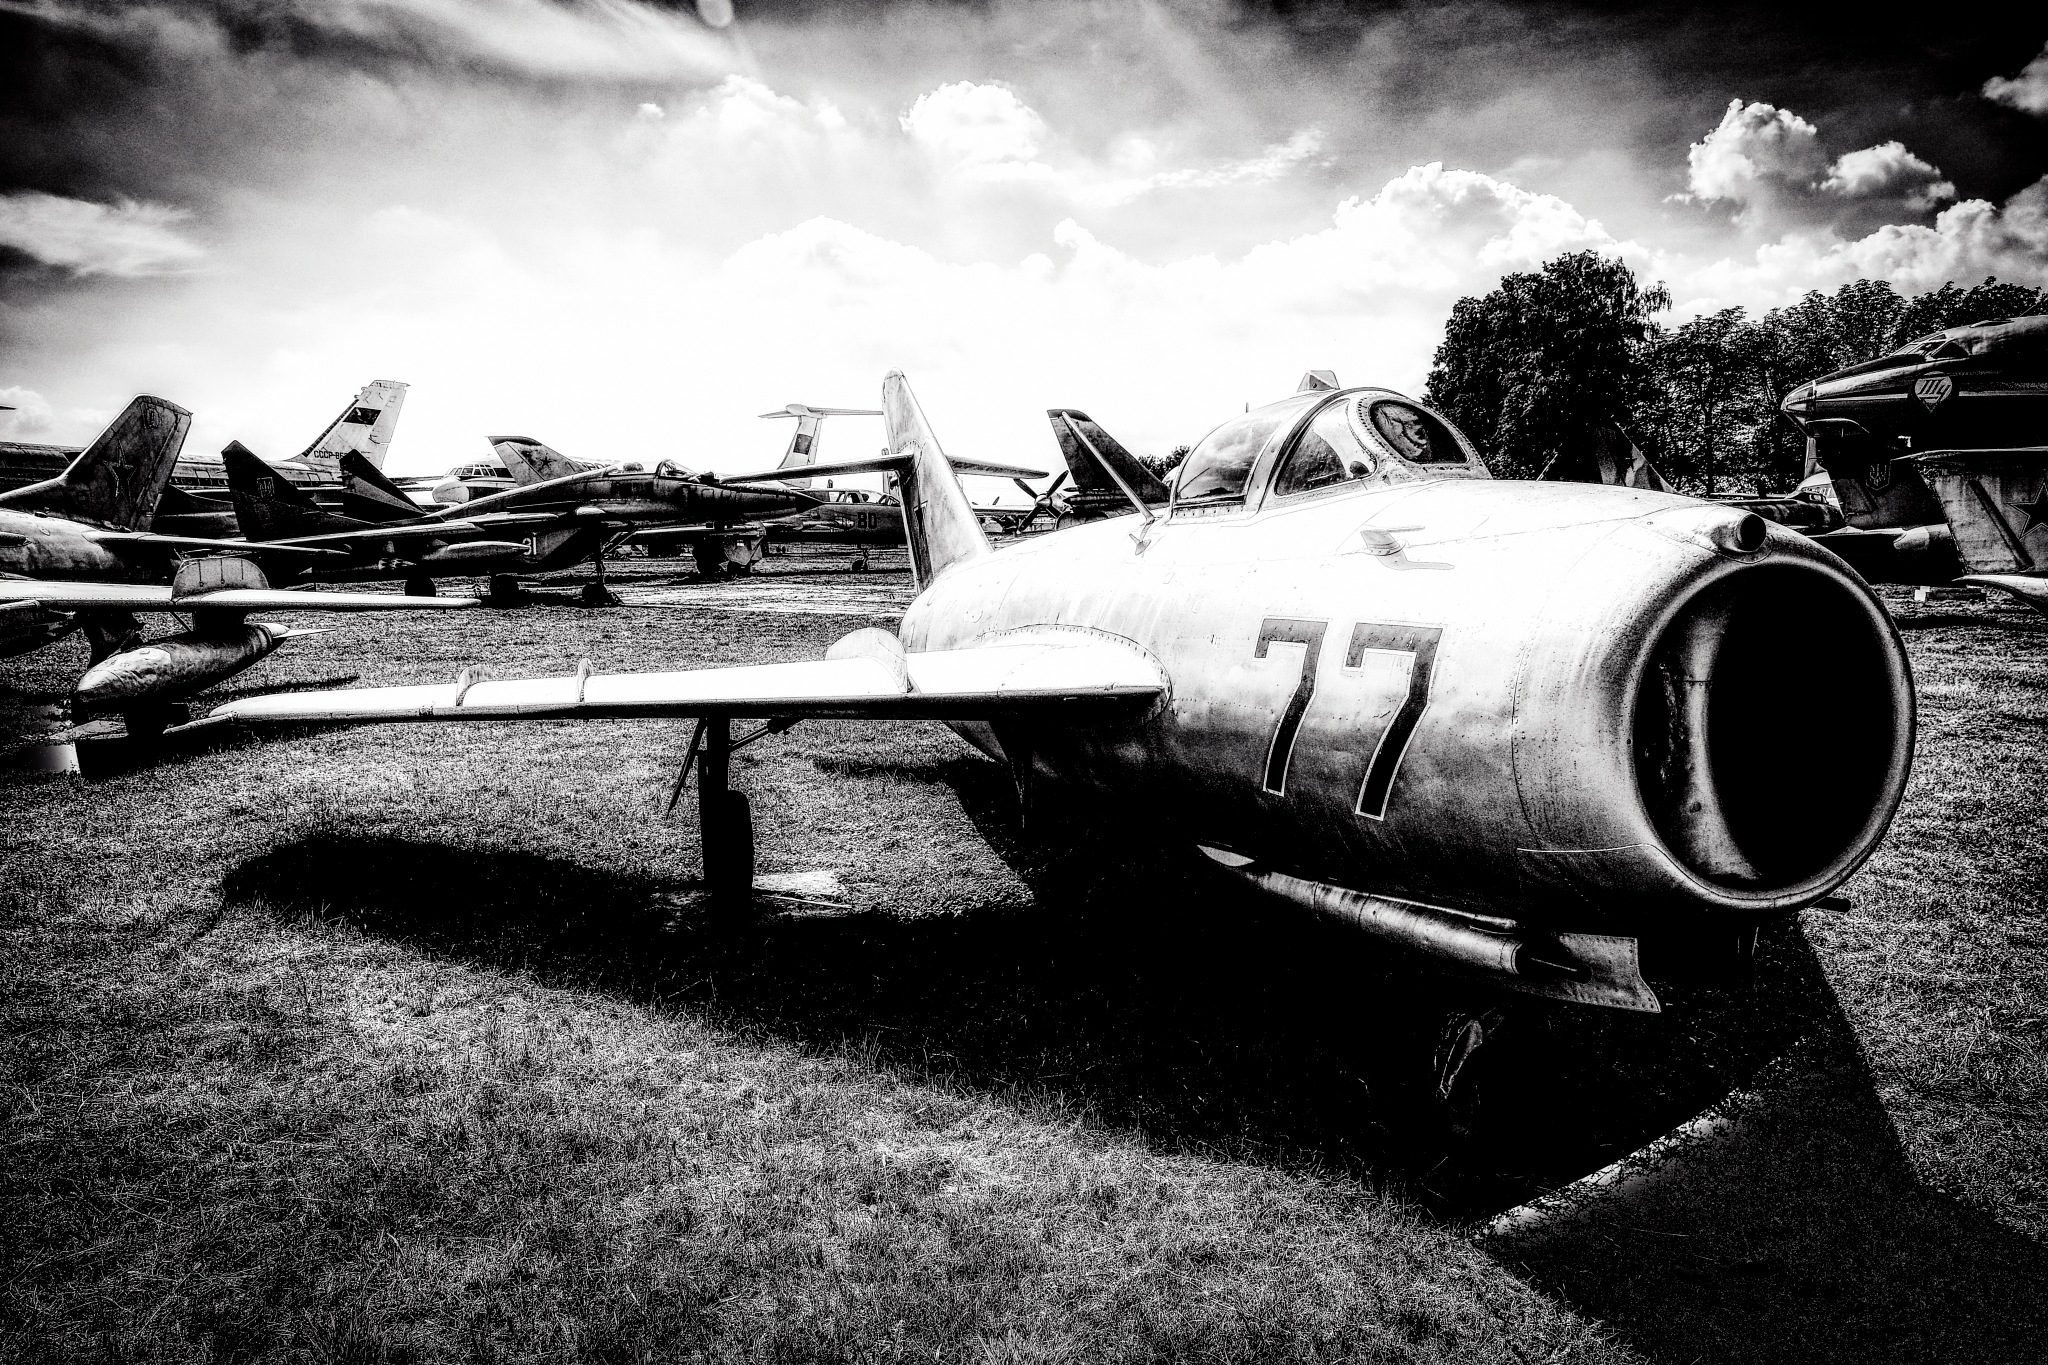 Mig15- The Jet that Shocked the West by Goran Jorganovich